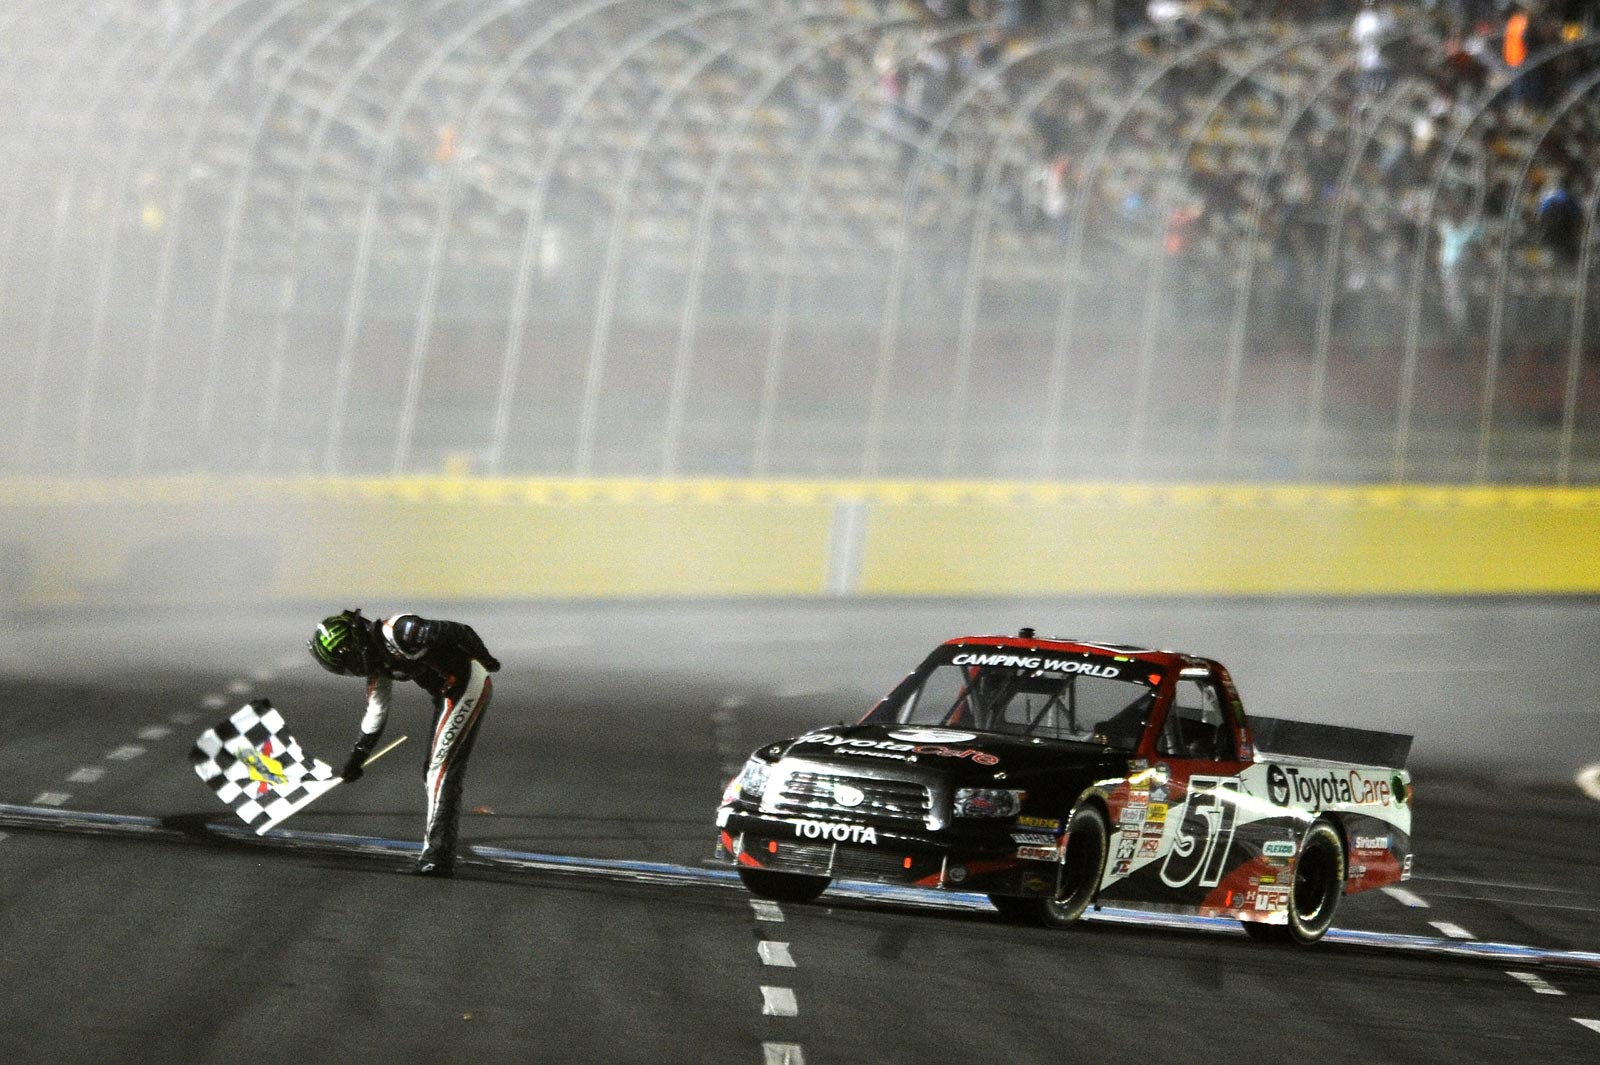 2013-Charlotte-Trucks-Kyle-Busch-With-Checkered-Flag